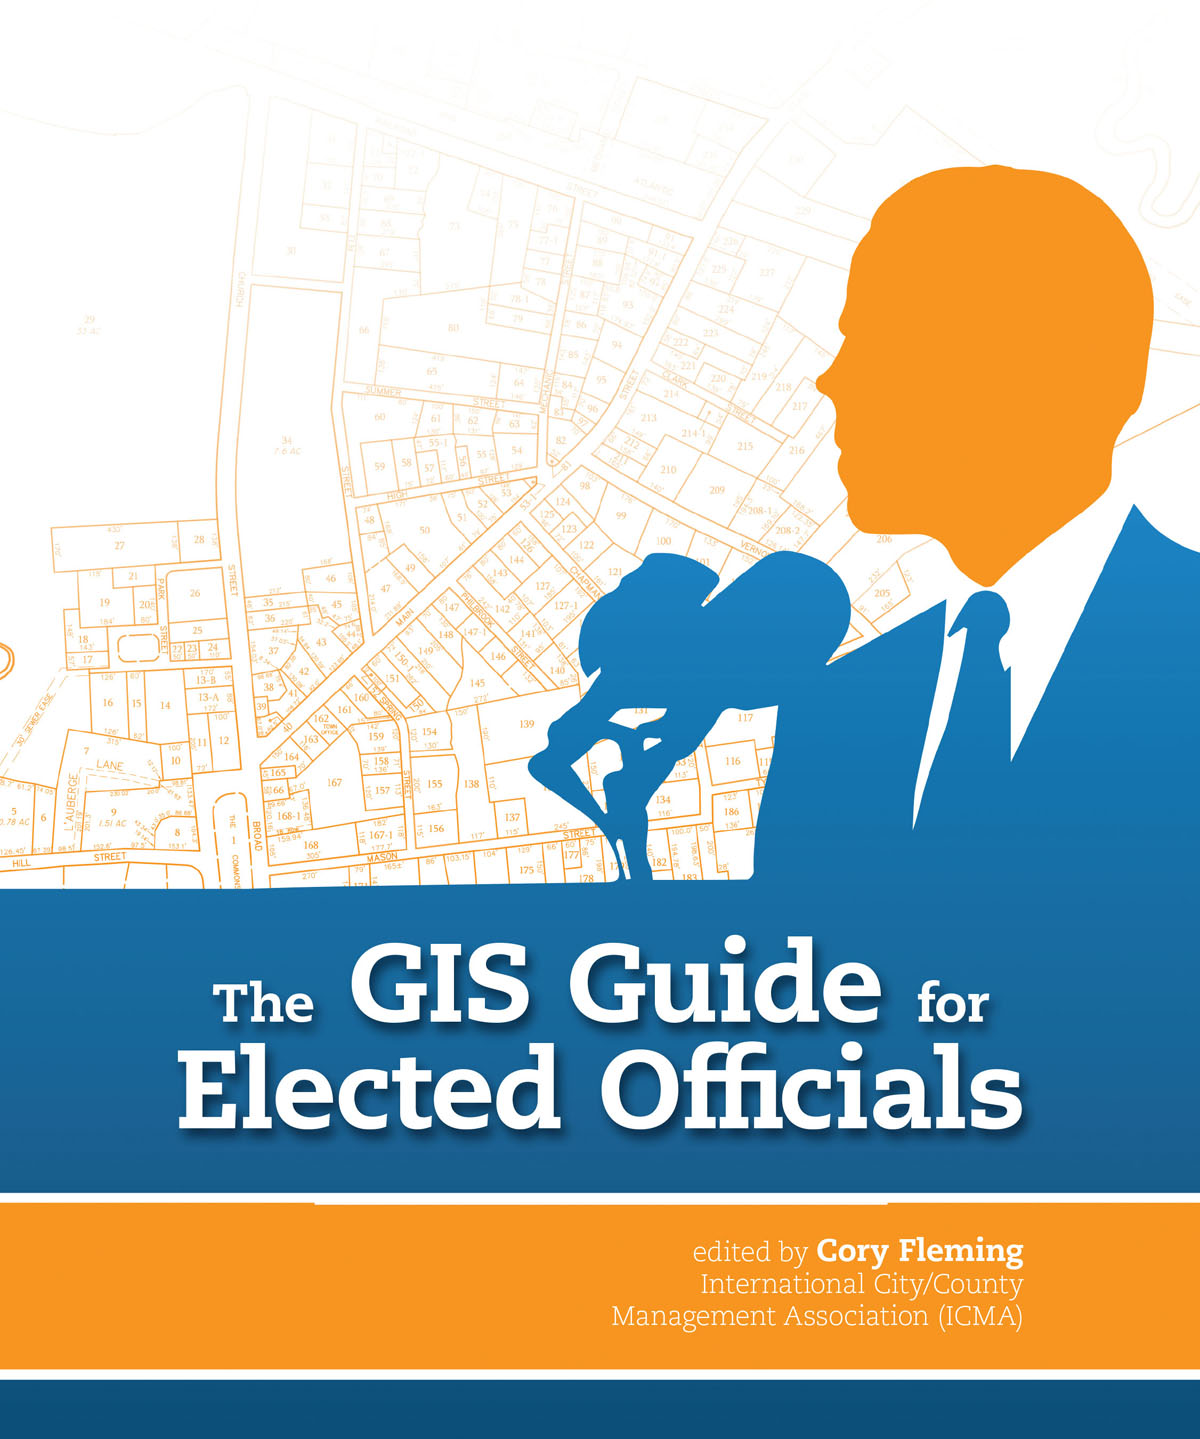 A valuable resource for government officials who want to better understand how to use GIS to answer location-based questions.